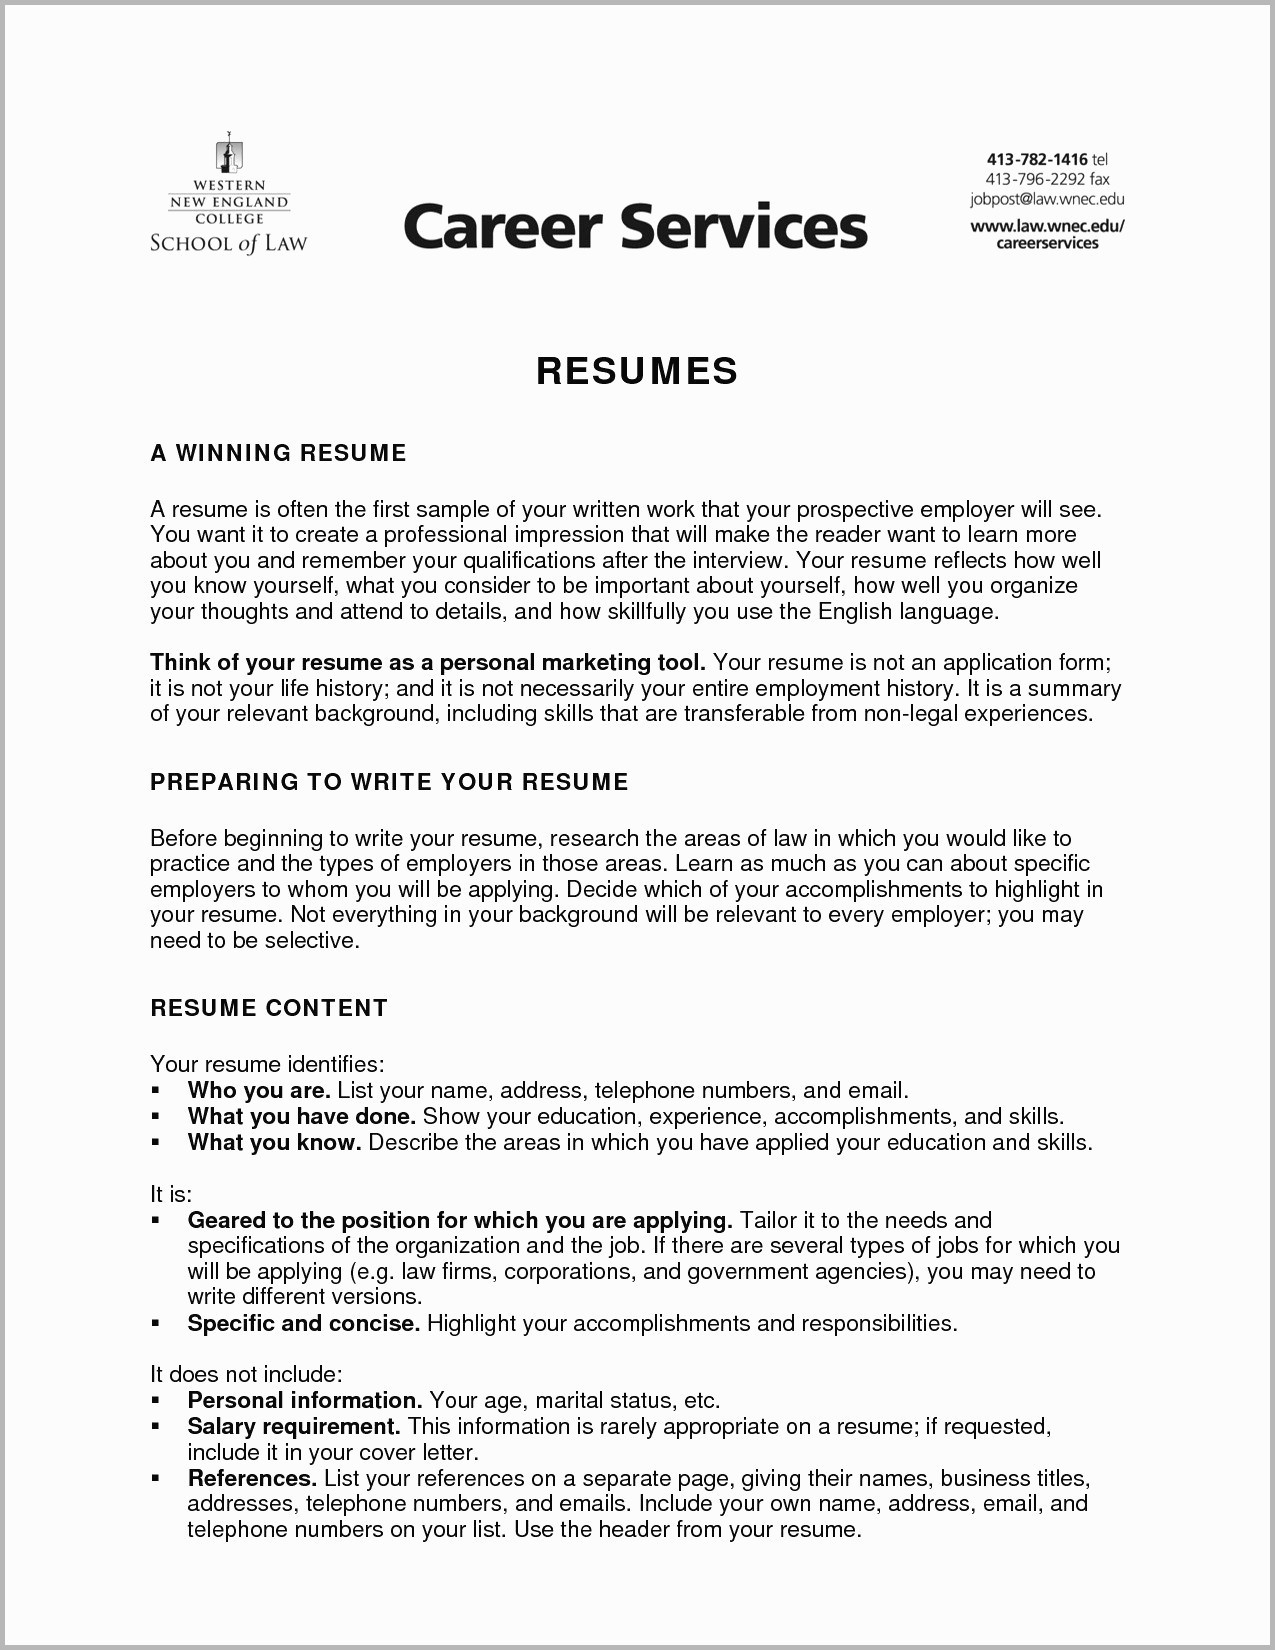 Diesel Mechanic Resume - 5 Awesome Truck Mechanic tools Concept Hand tools and Wrenchs